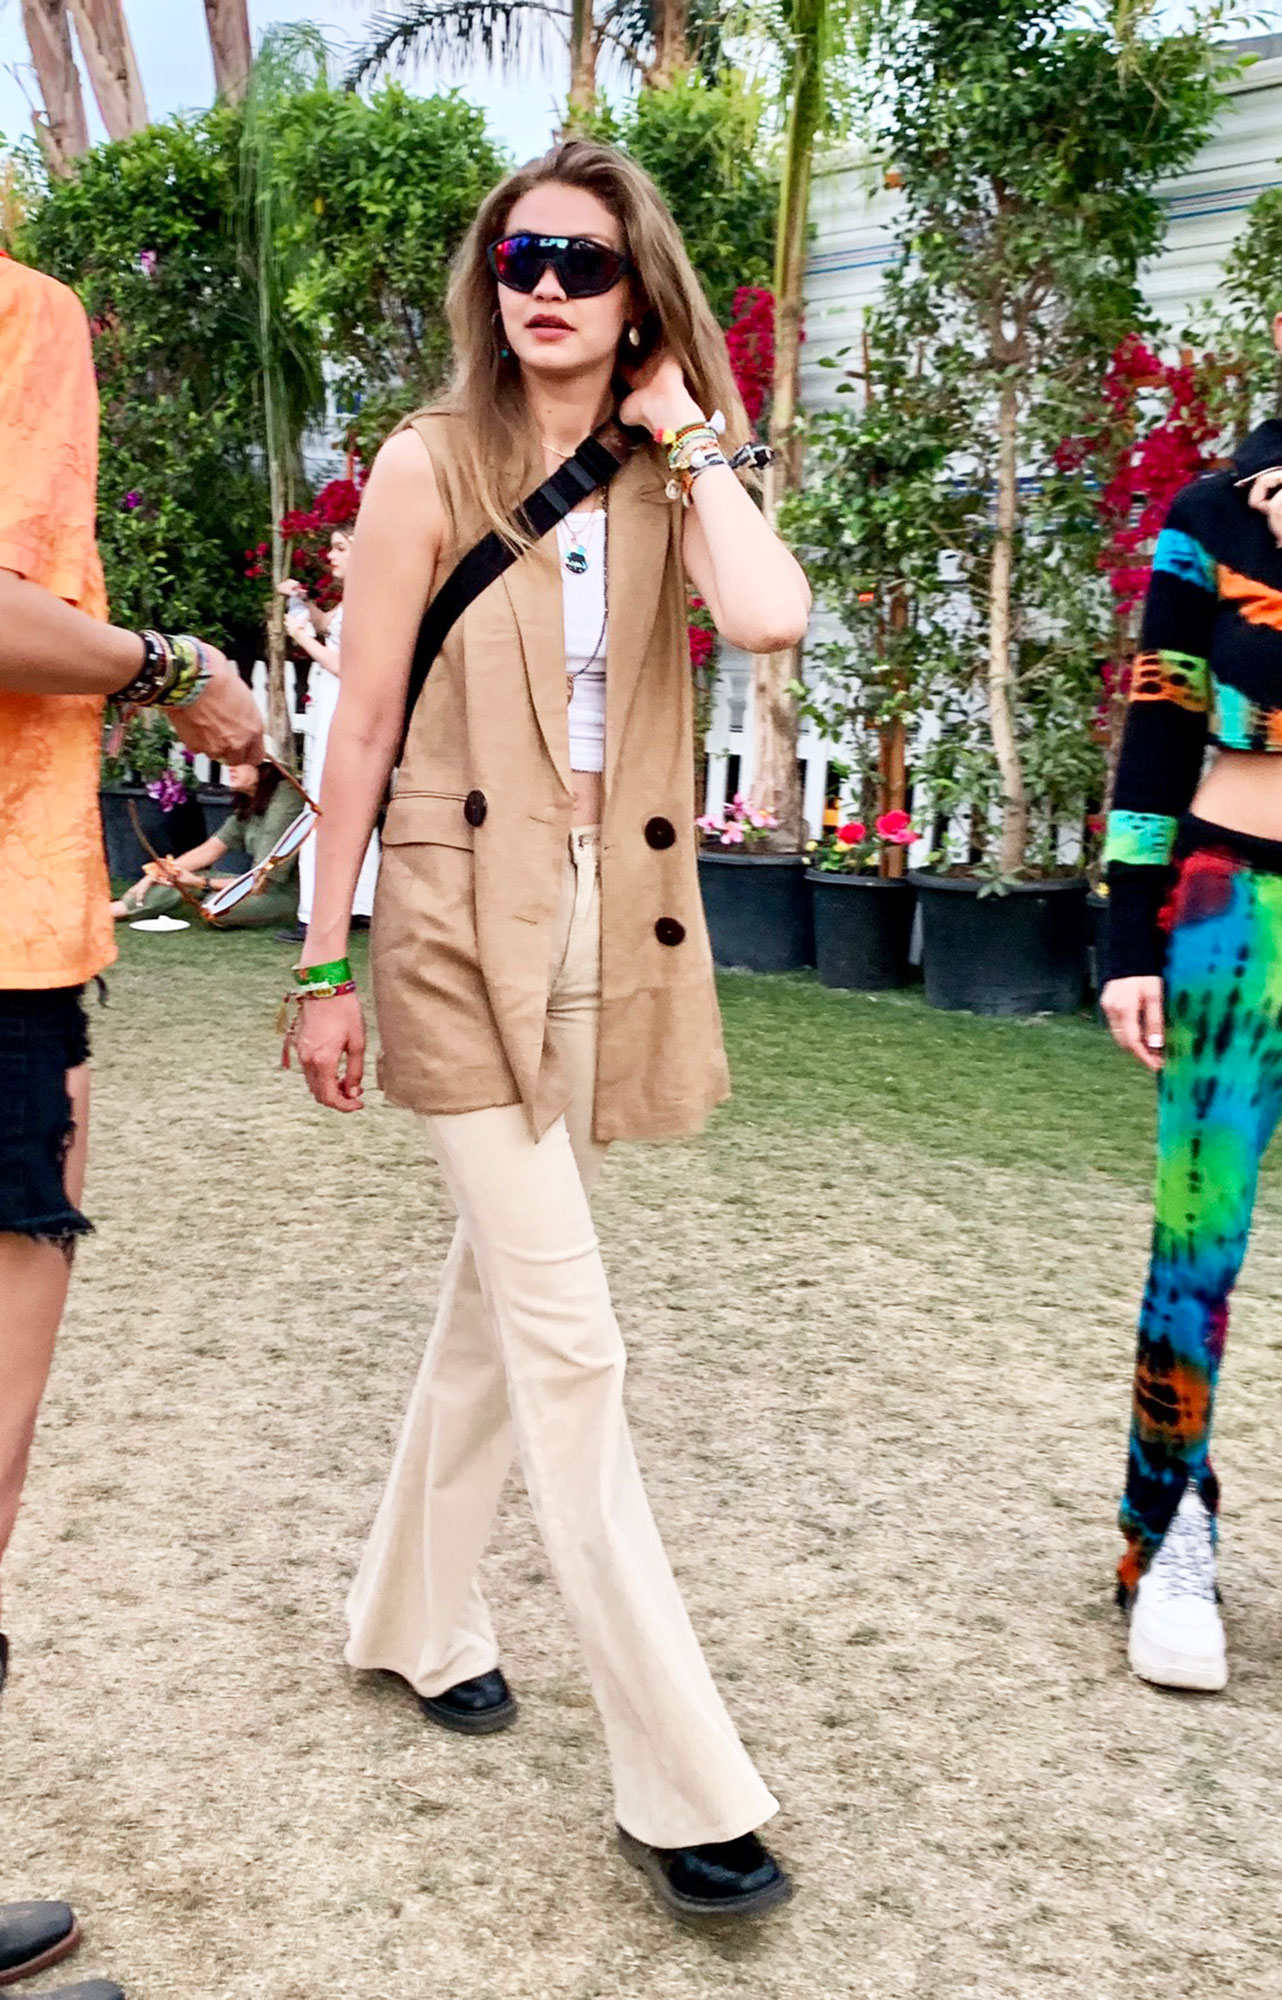 coachella fashion Gigi Hadid - The model opted for a neutral color palette in her flared khakis and suede vest on Sunday, April 14.